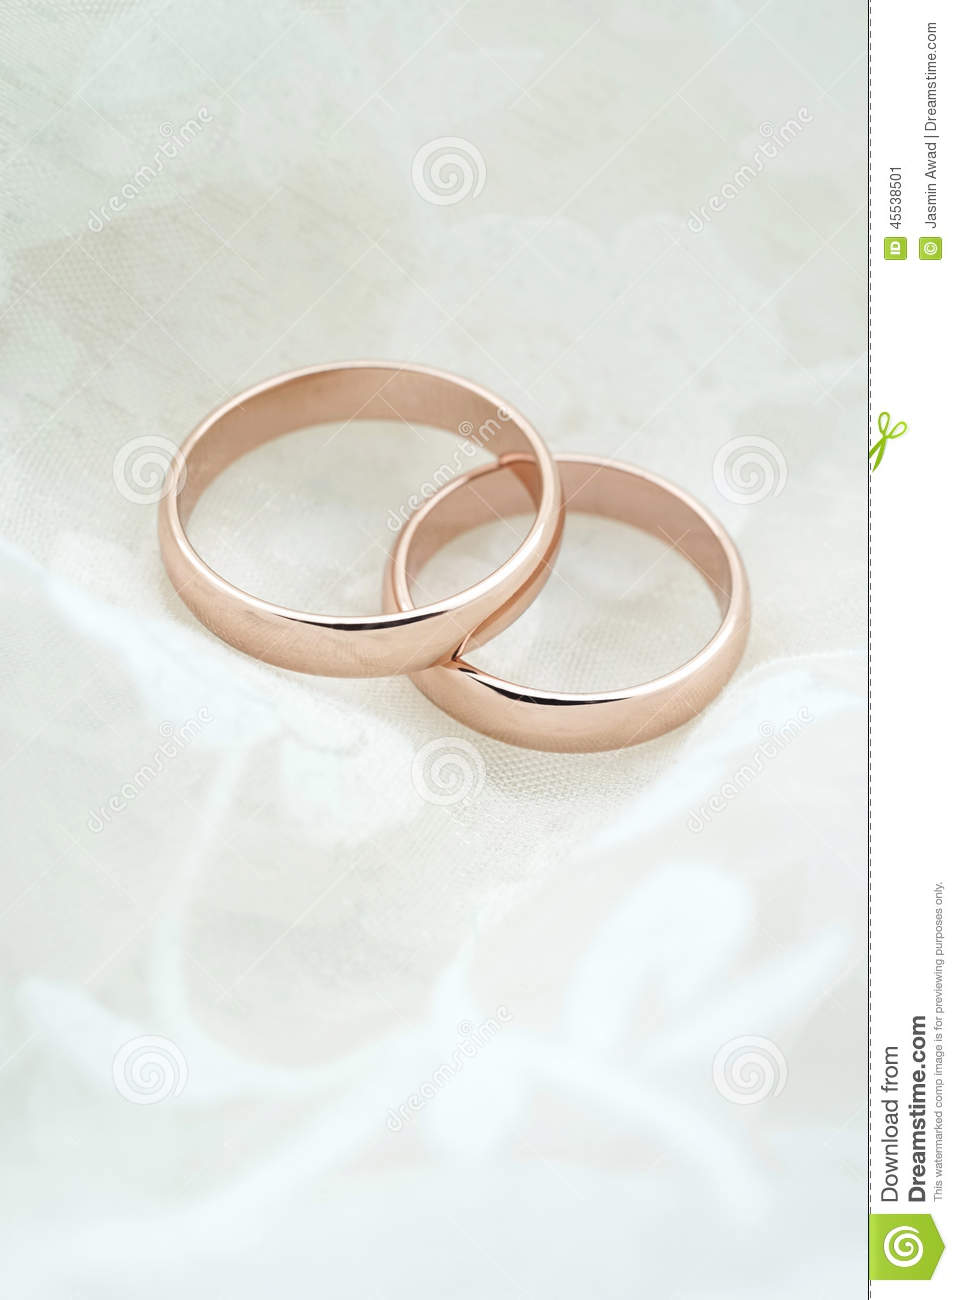 Wedding Invite With Rose Gold Rings Stock Image Image